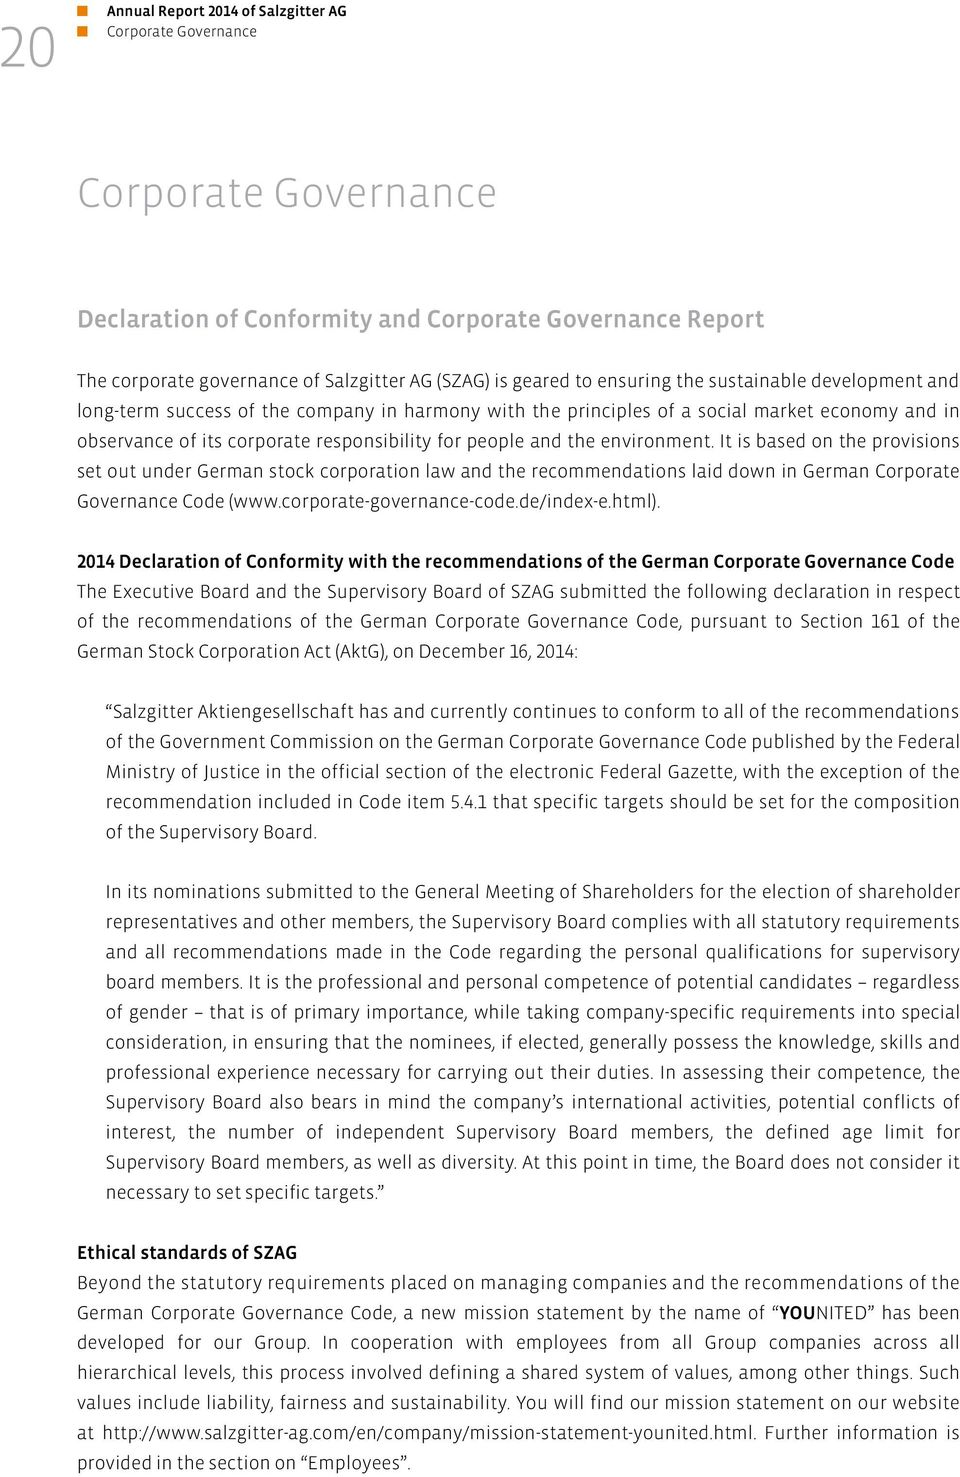 the environment. It is based on the provisions set out under German stock corporation law and the recommendations laid down in German Corporate Governance Code (www.corporate-governance-code.